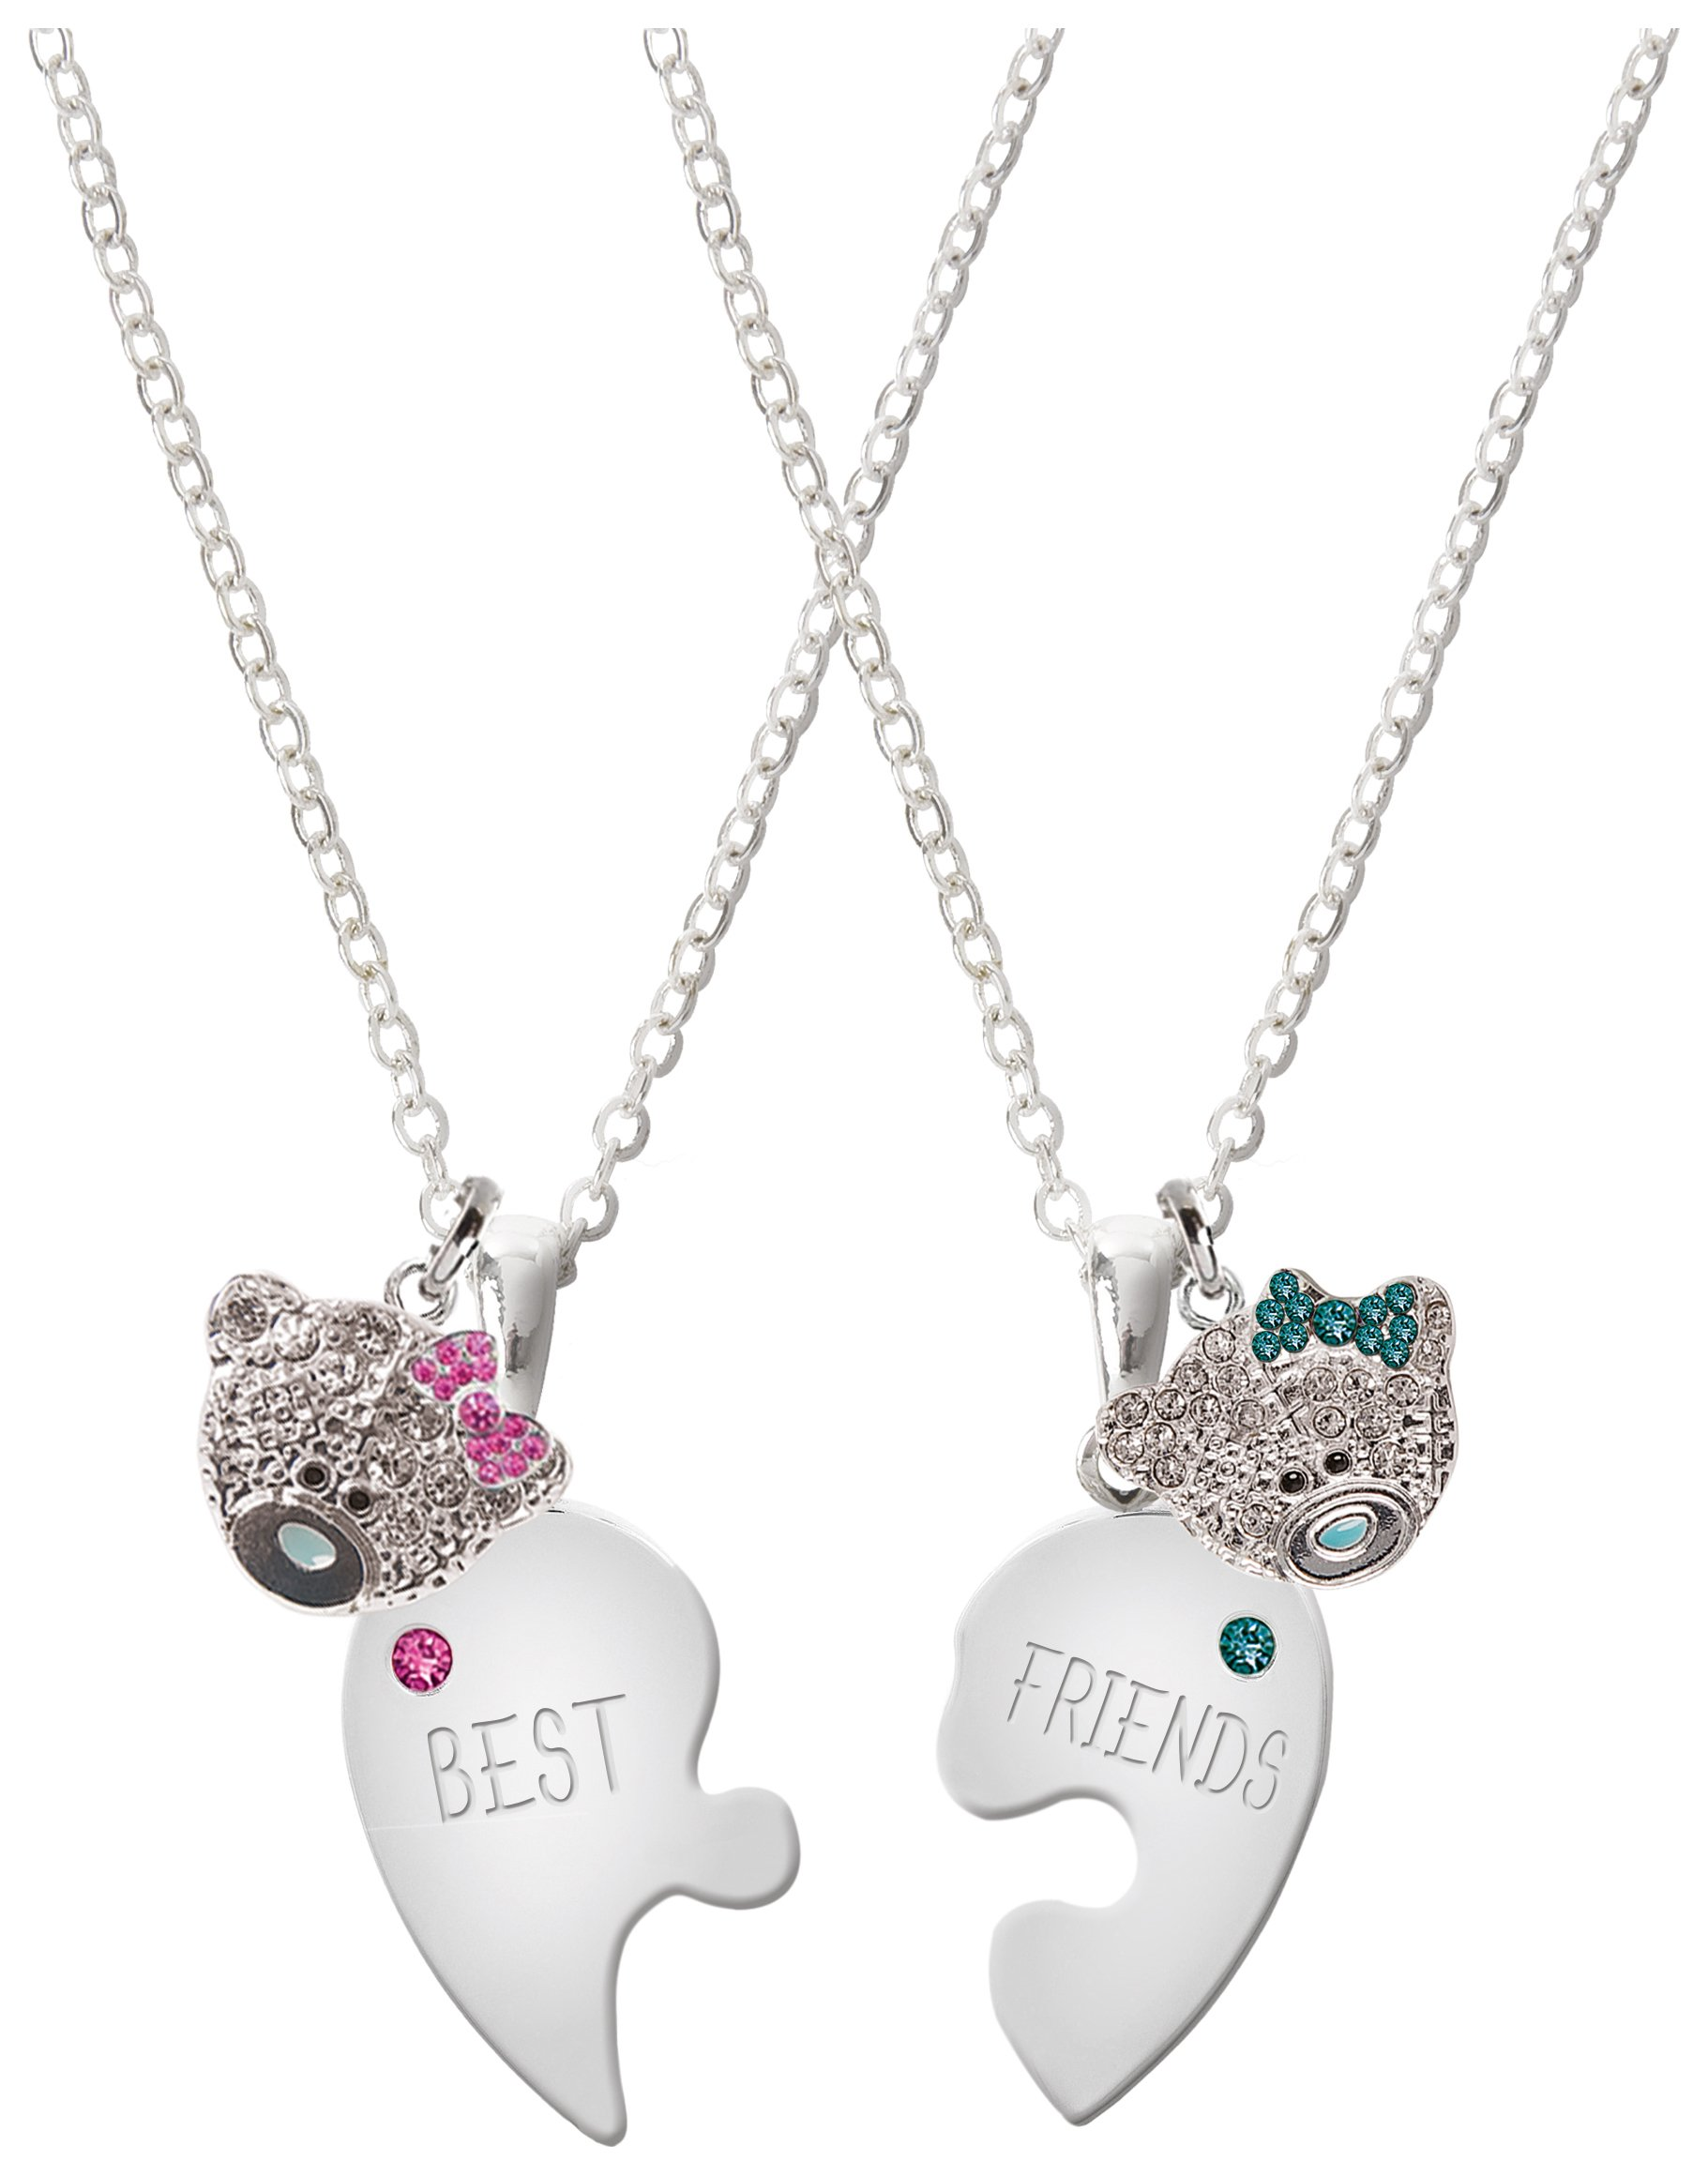 Image of Me To You Tatty Teddy 'Best Friends' Pendants - Set of 2